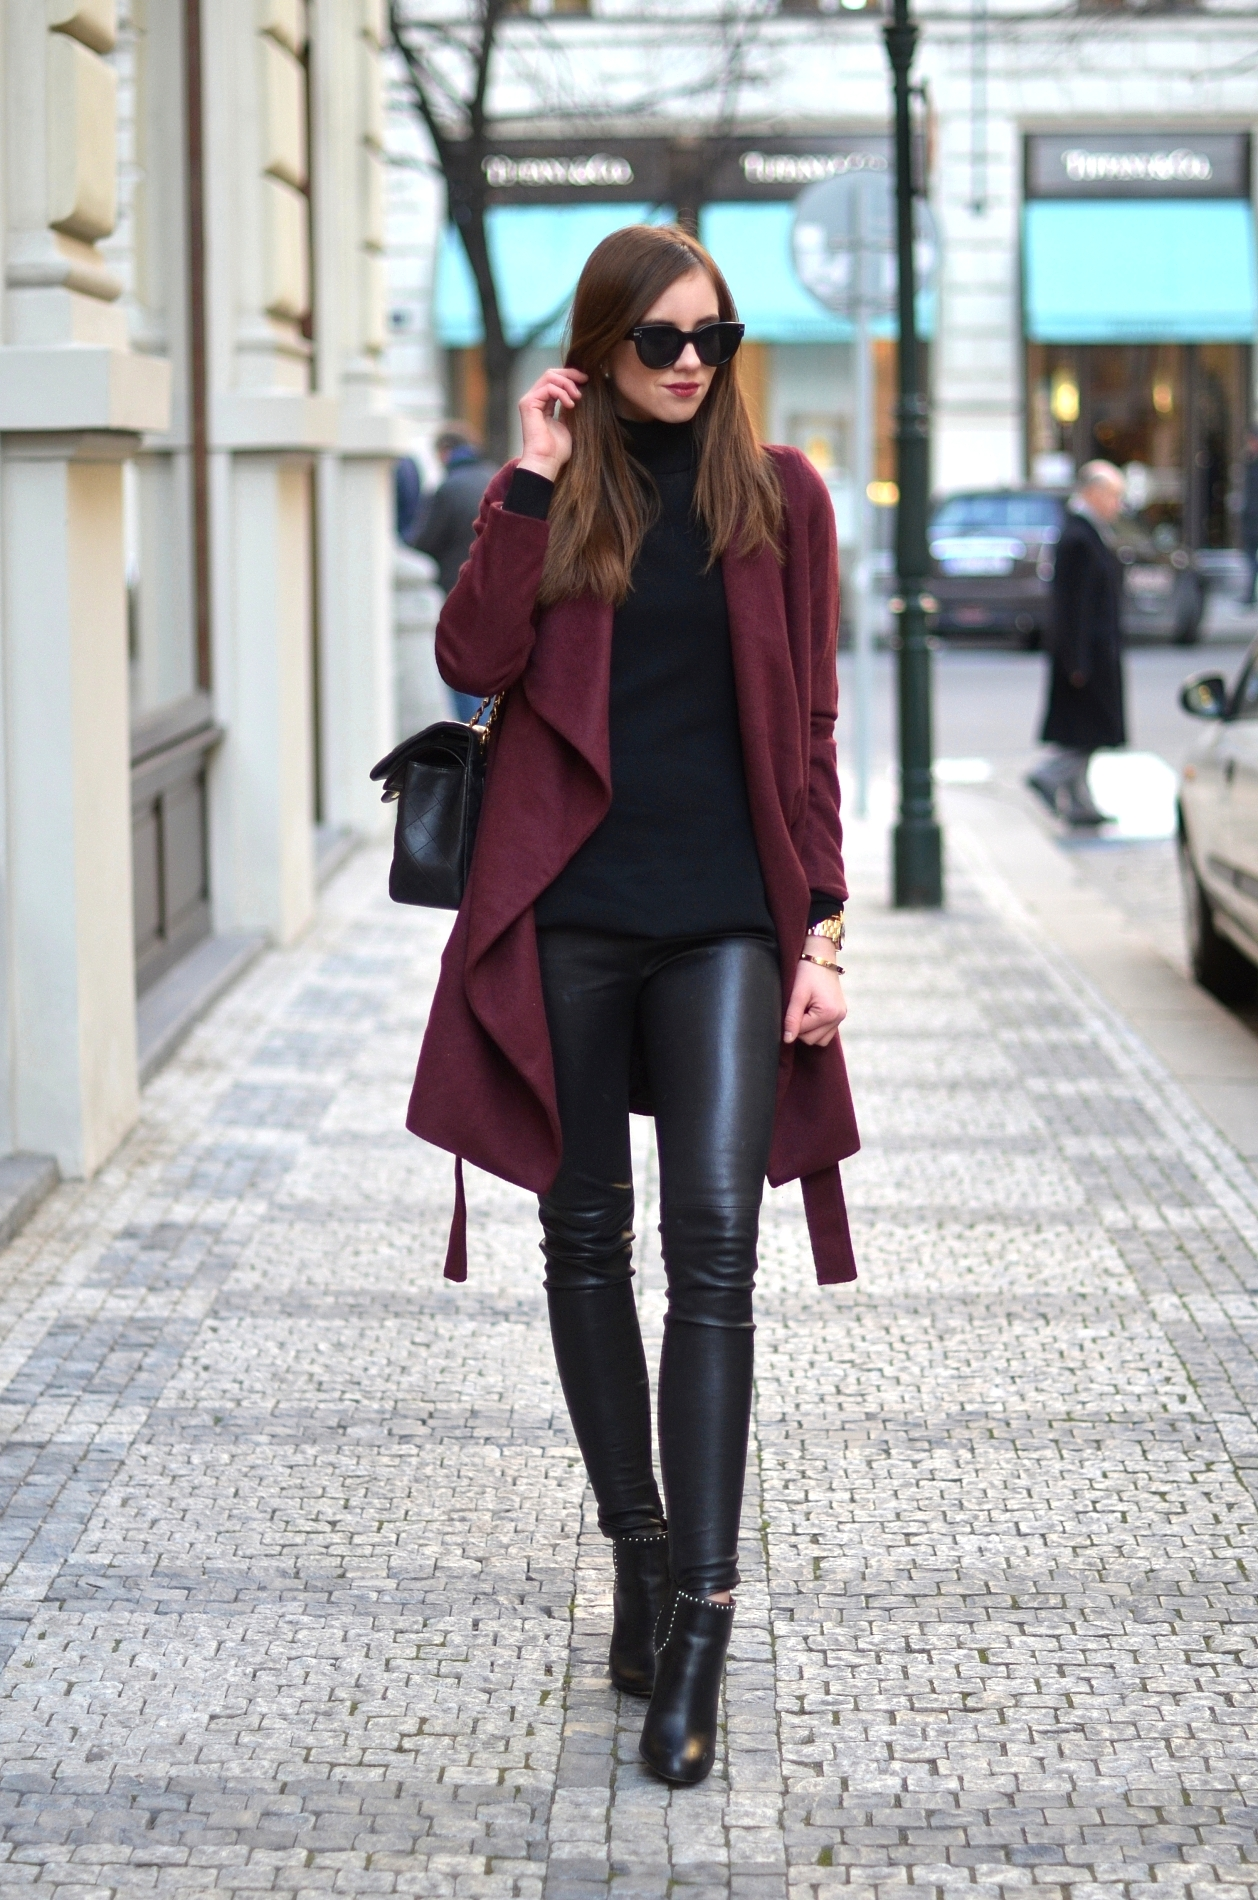 Try reworking colour into an all black outfit by choosing a calm autumnal colour on your coat or scarf. Barbora Ondrackova wears this gorgeous plum number over leather leggings and a simple roll neck sweater; an awesome winter style Coat: Medicine, Top/Leggings: Gasmy, Boots: Givenchy, Bag: Chanel.